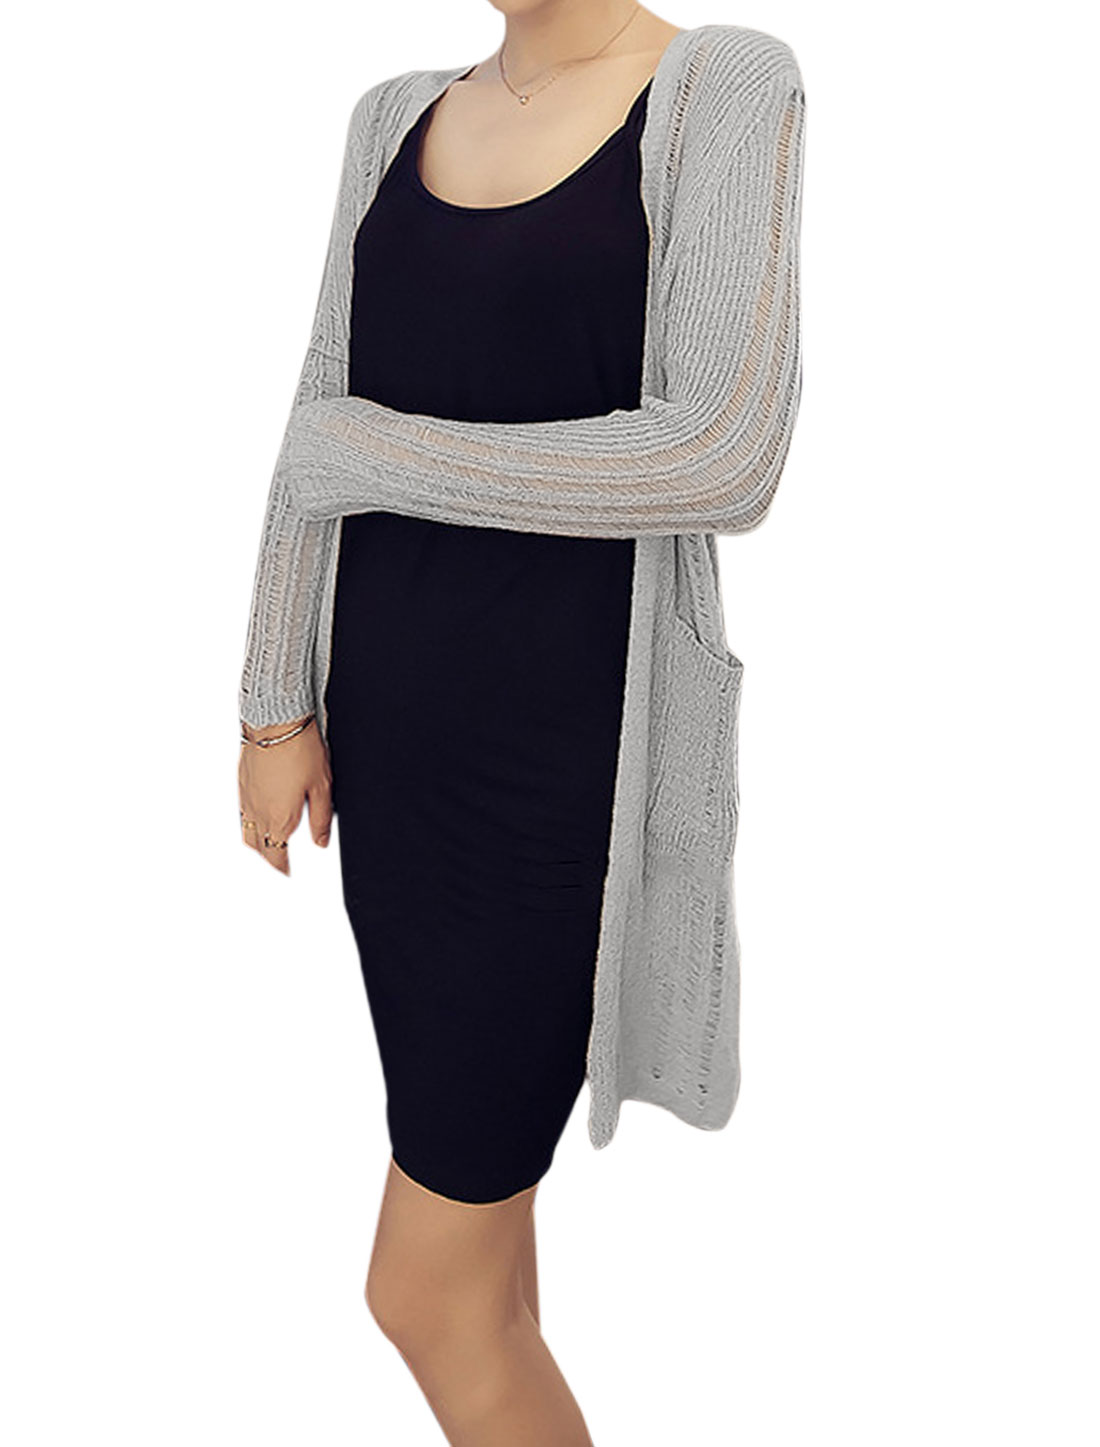 Women Front Opening Two Pockets Tunic Knit Cardigan Light Gray XS